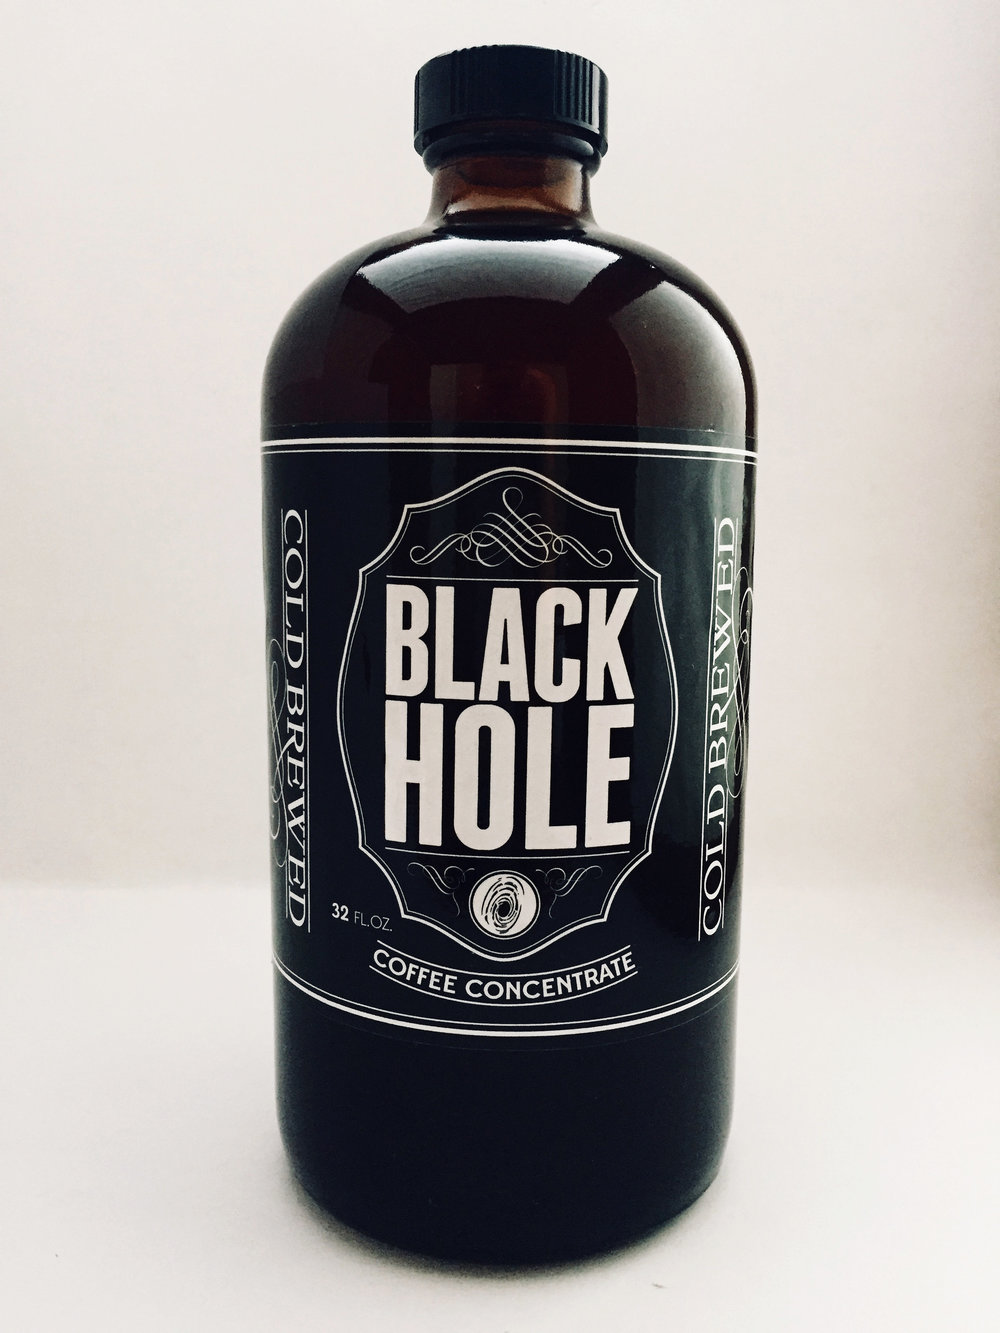 Black Hole Coffe Concentrate.jpg